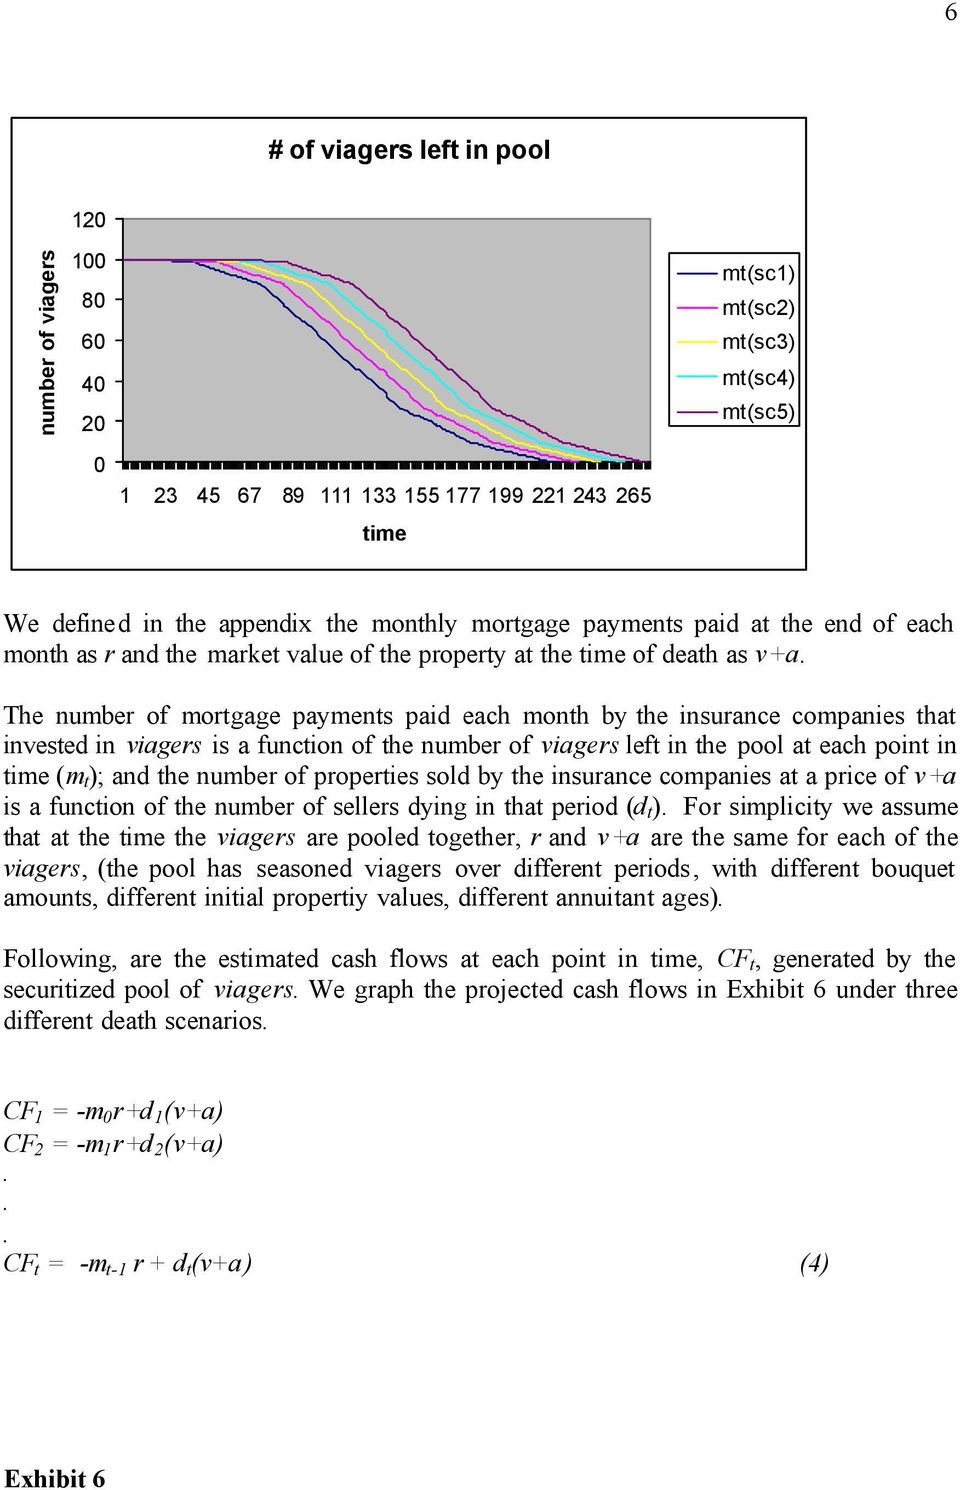 The number of mortgage payments paid each month by the insurance companies that invested in viagers is a function of the number of viagers left in the pool at each point in time (m t ); and the